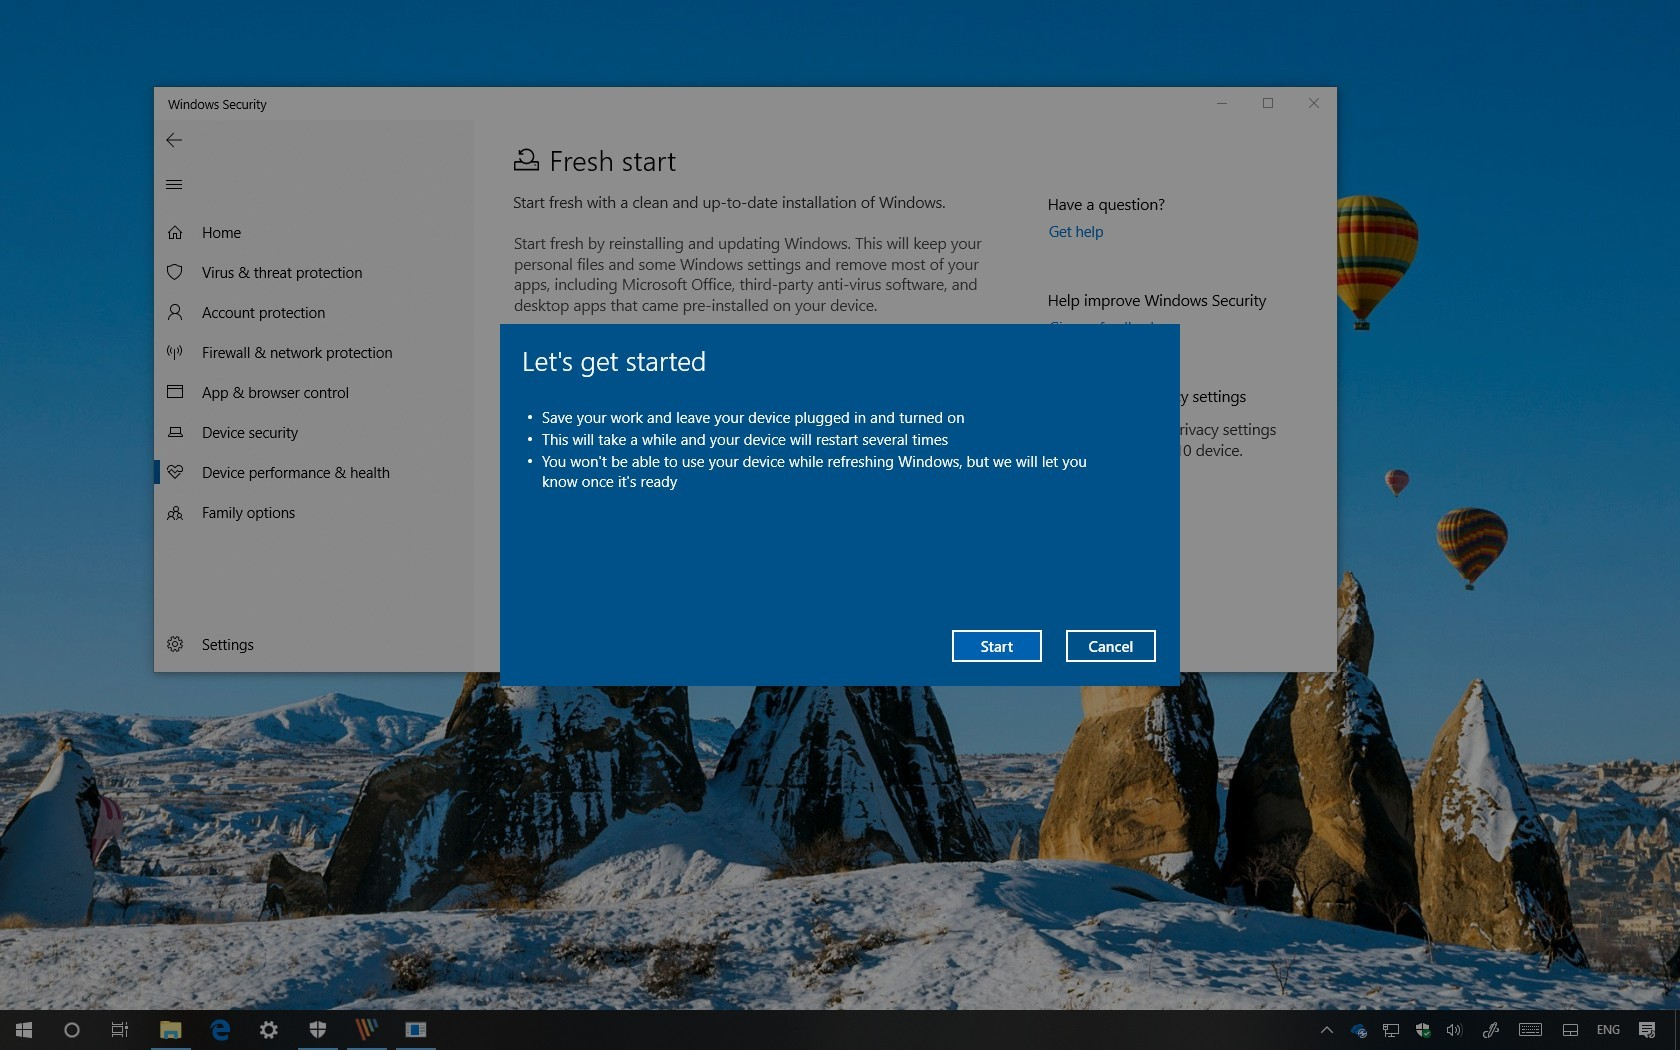 Windows 10 Fresh Start without bloatware